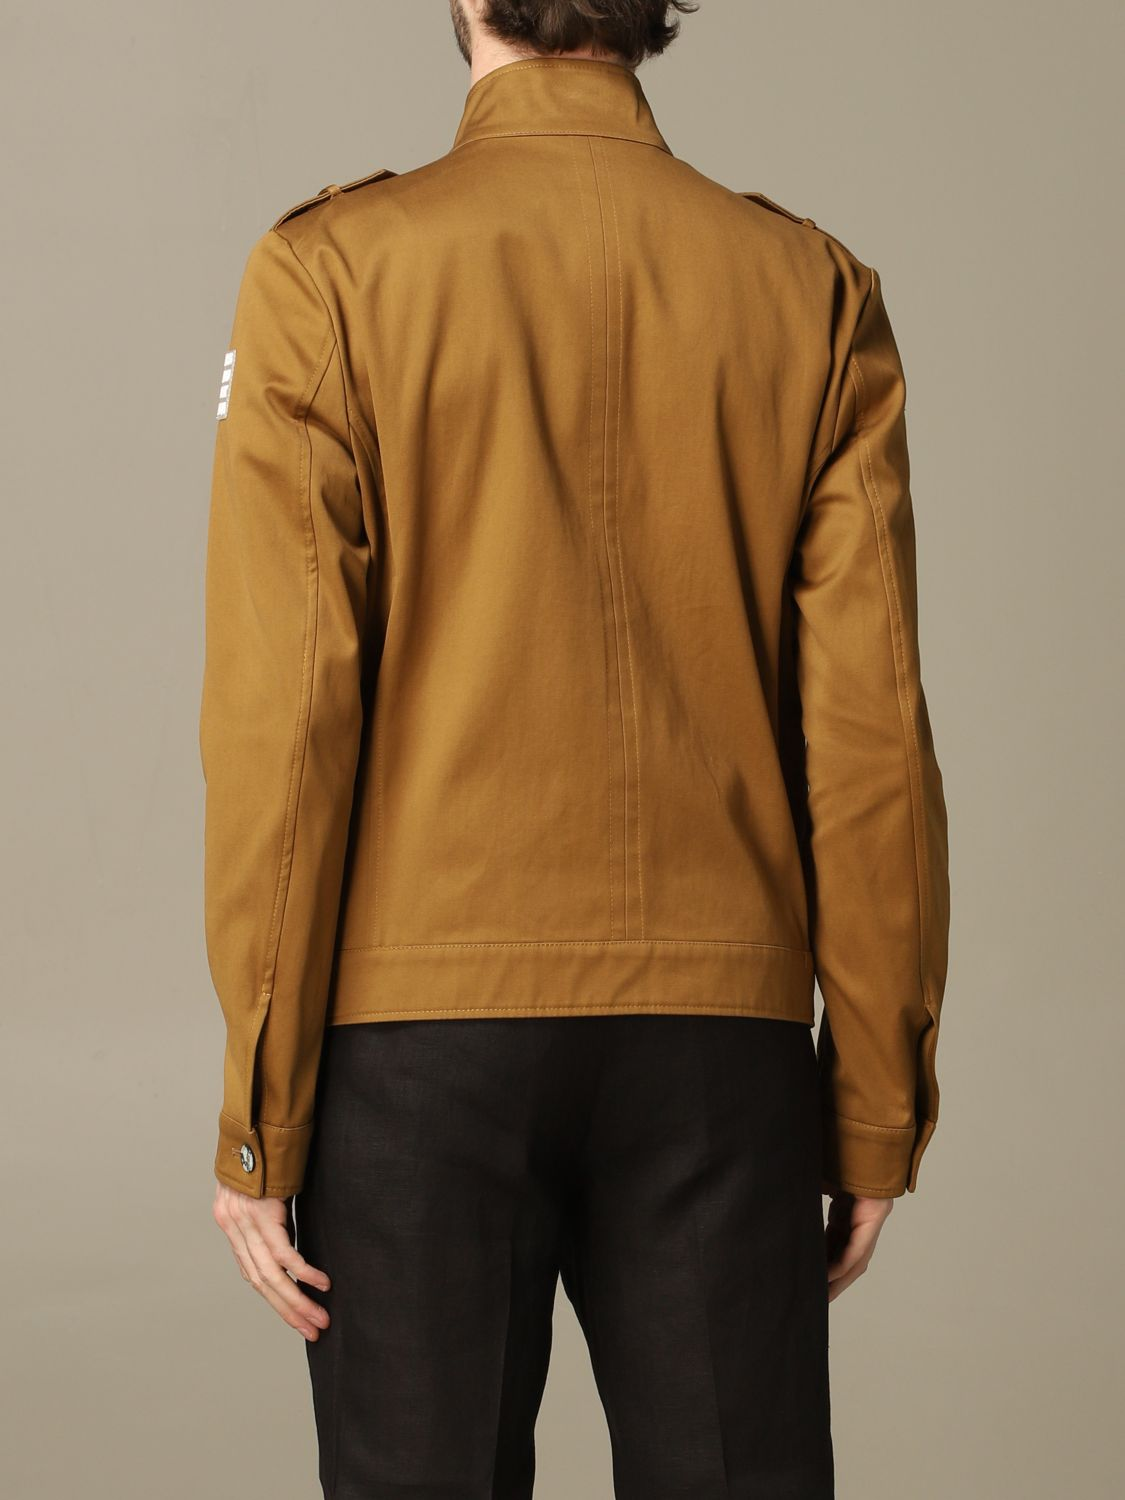 Jacket Alessandro Dell'acqua: Jacket men Alessandro Dell'acqua brown 2